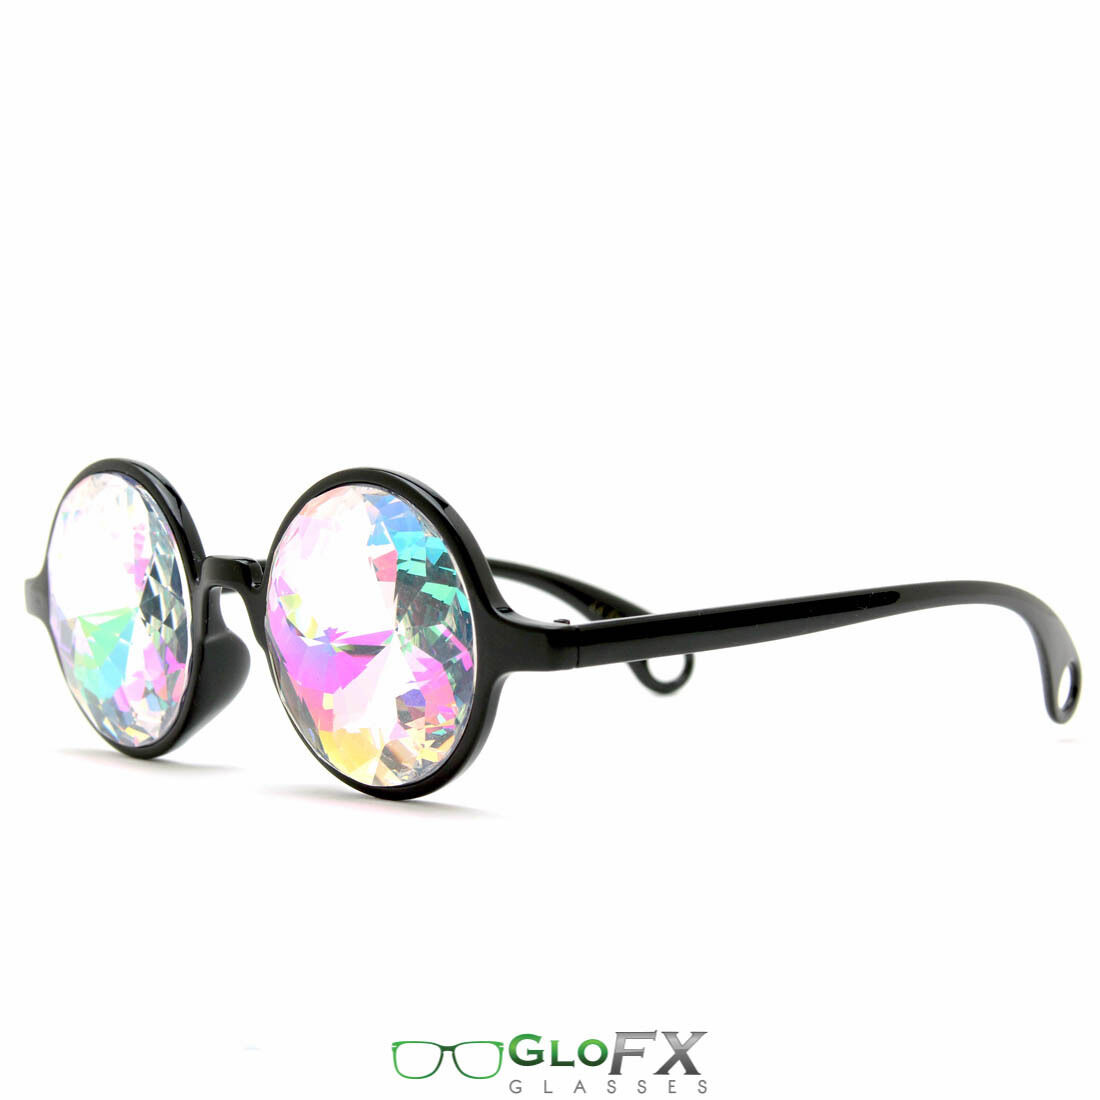 Kaleidoscope Glasses Usa Diffraction Rainbow Prism